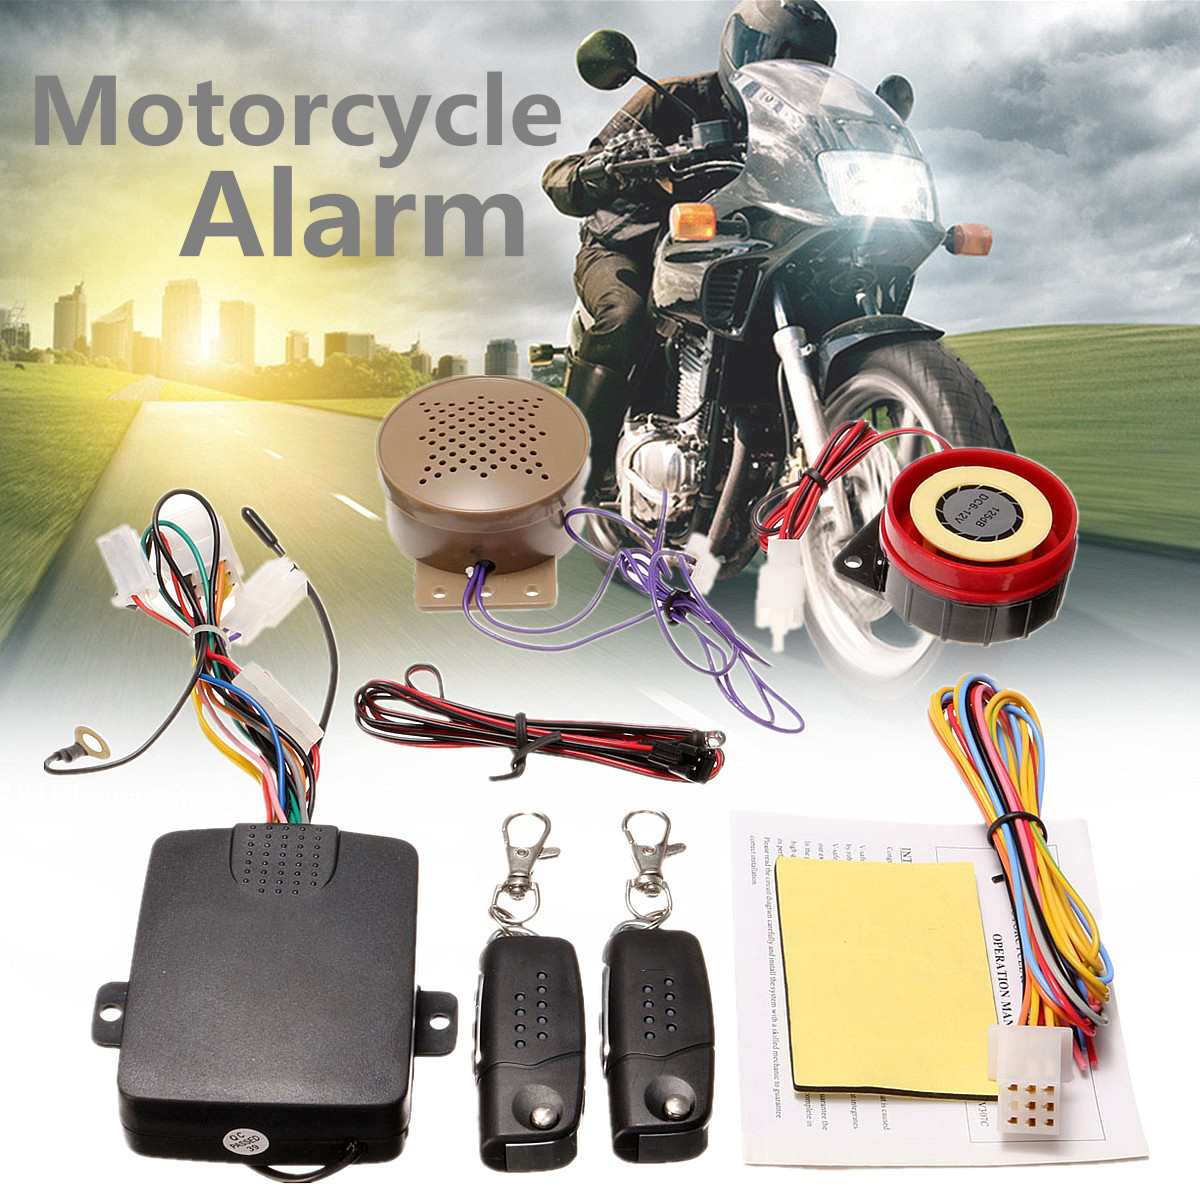 200M 2 Remote Controllers Motorcycle Alarm System Lock, [variant_title], [option1], [option2], [option3] - anythinganyware